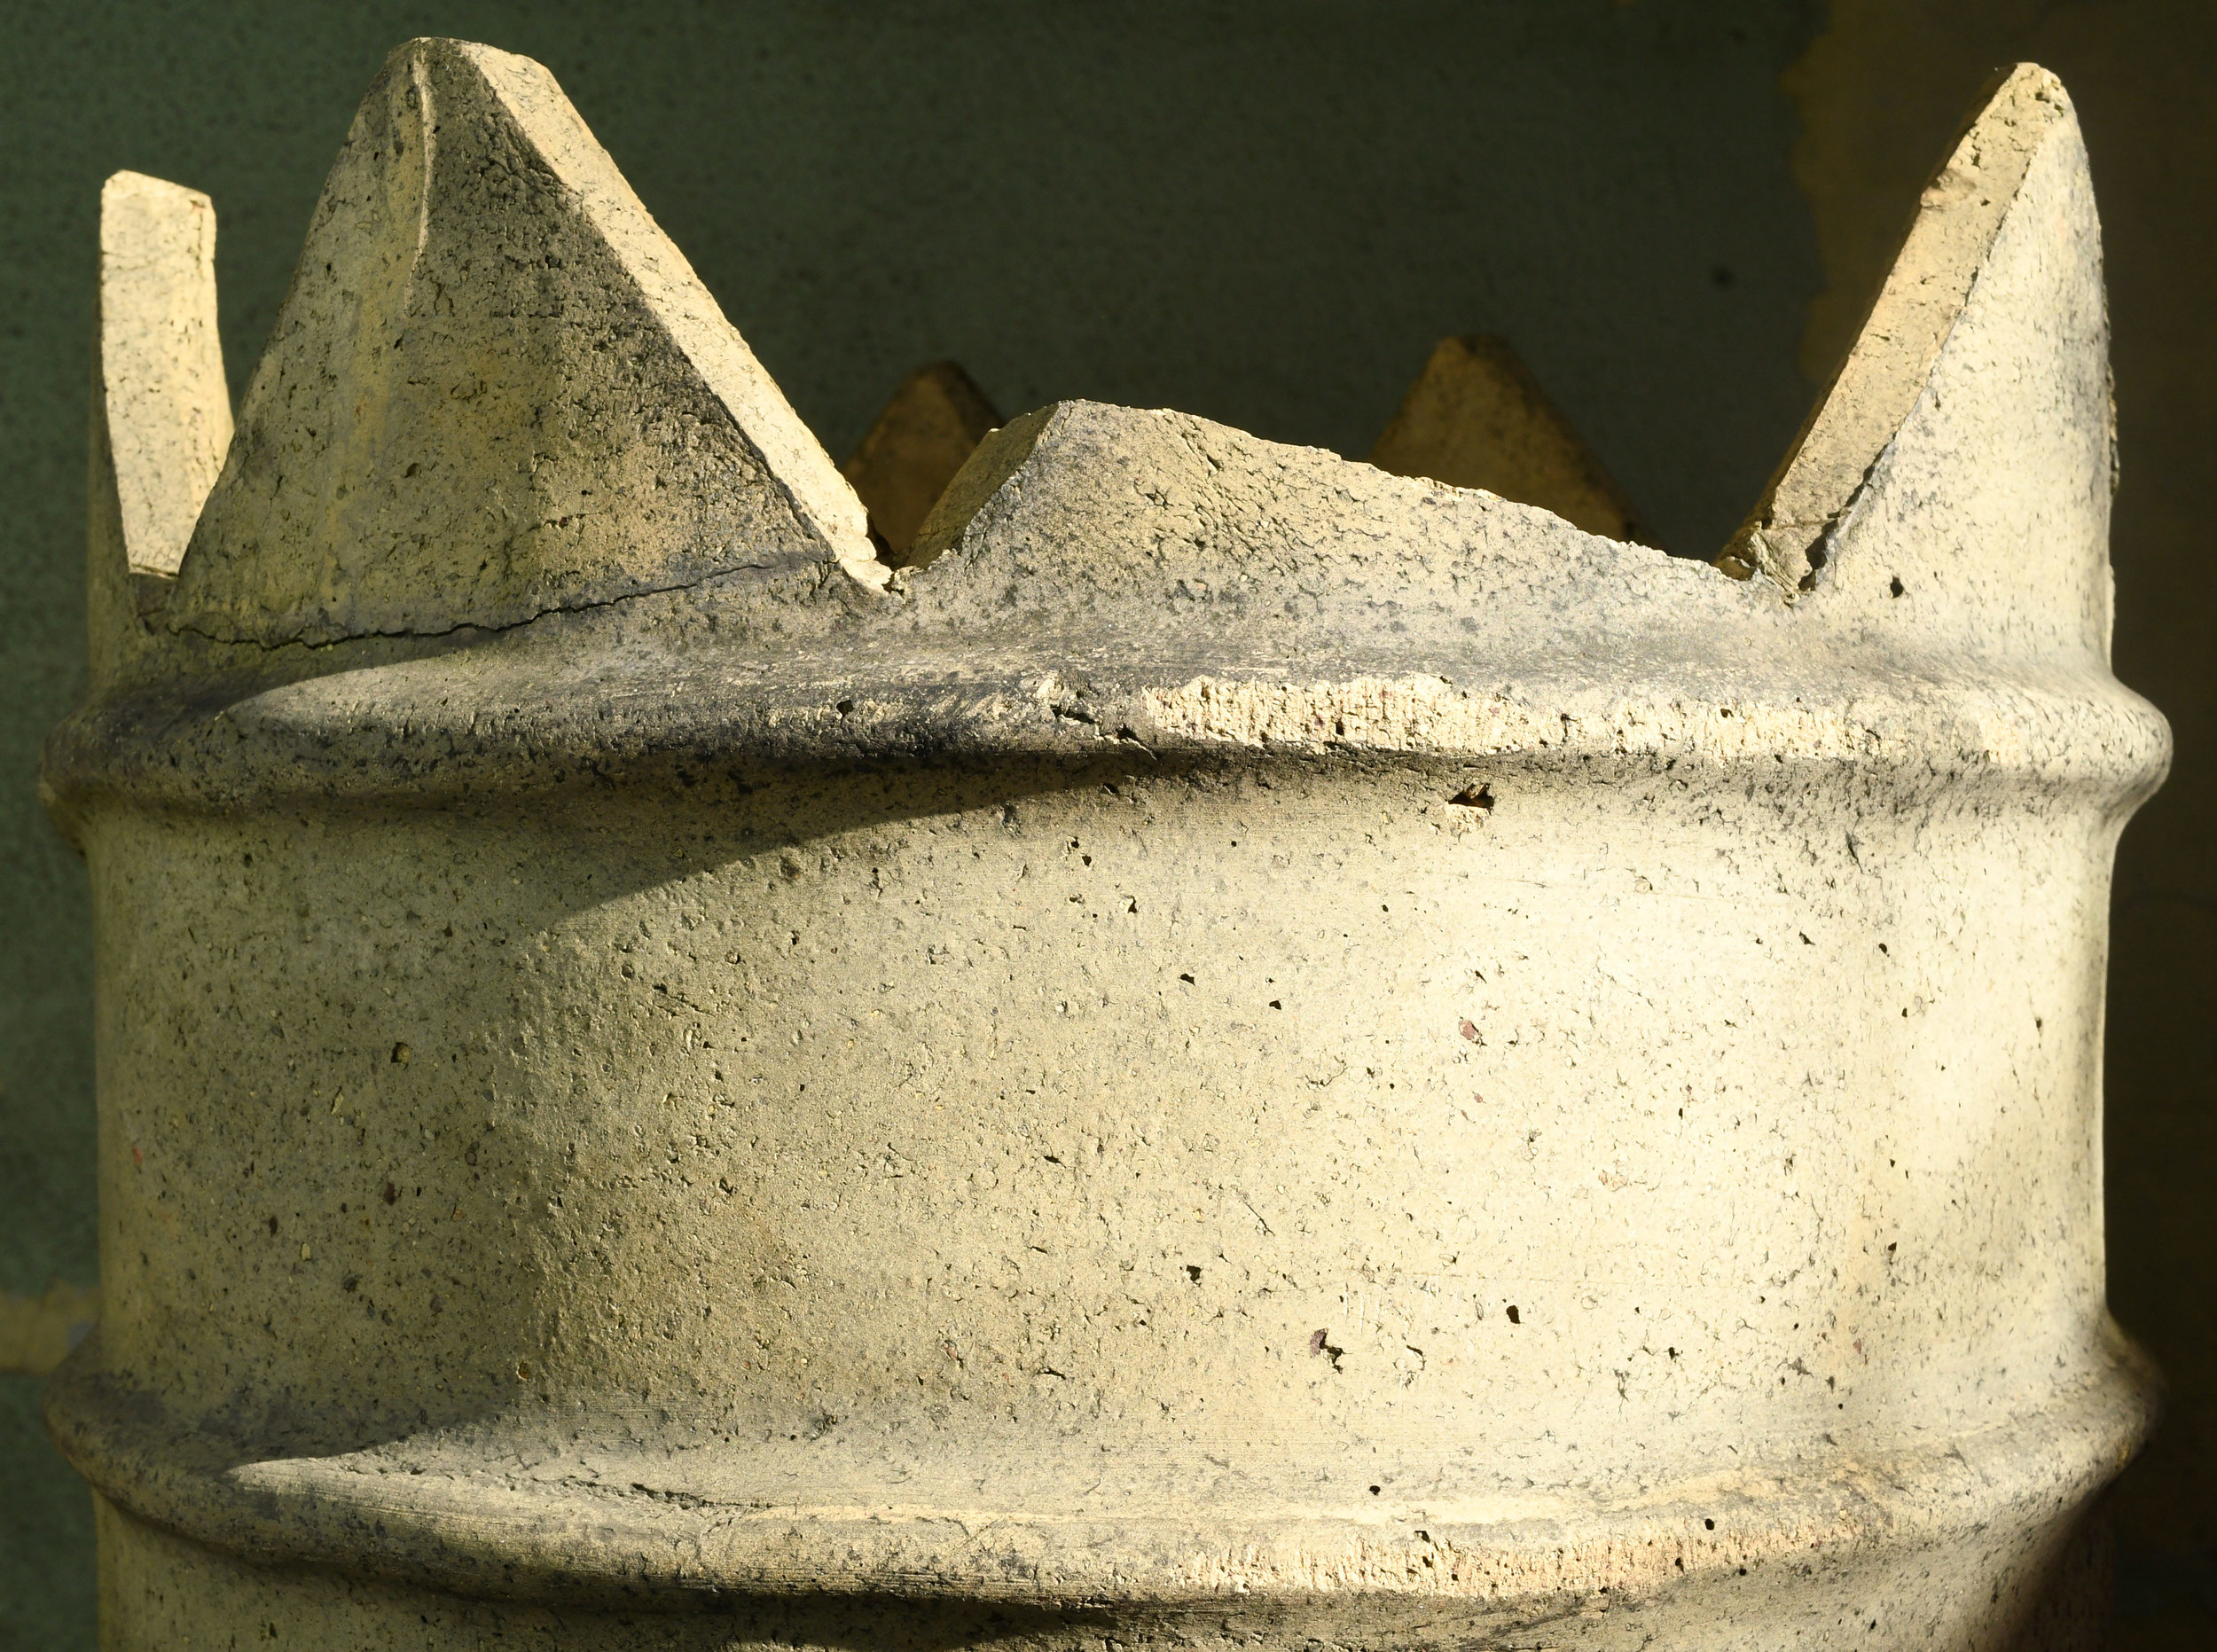 46480-chimney-pot-with-crown-shadow.jpg